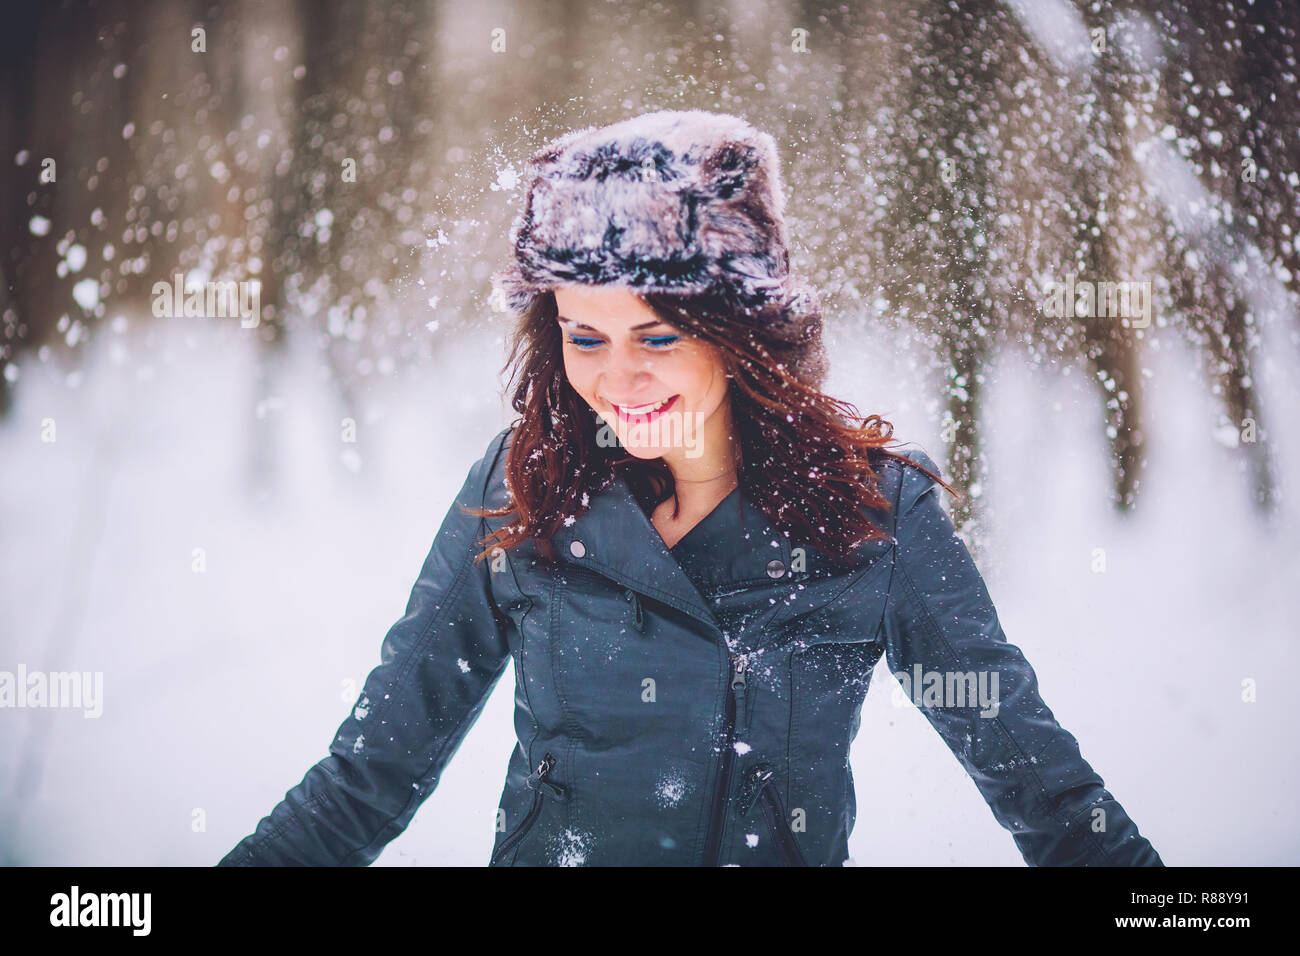 girl against the background of the winter forest Stock Photo